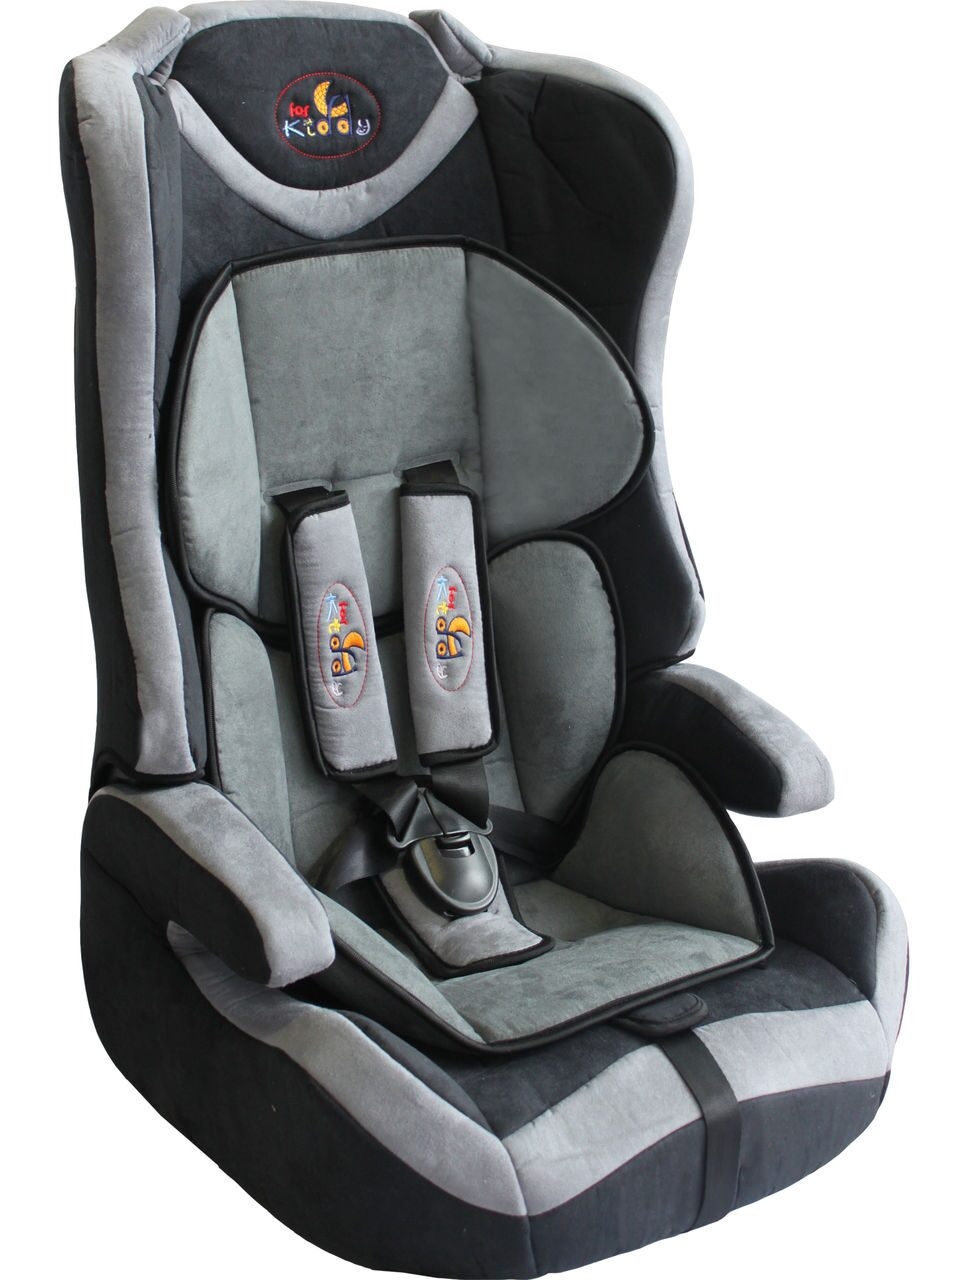 Автокресло ForKiddy Sprinter Grey